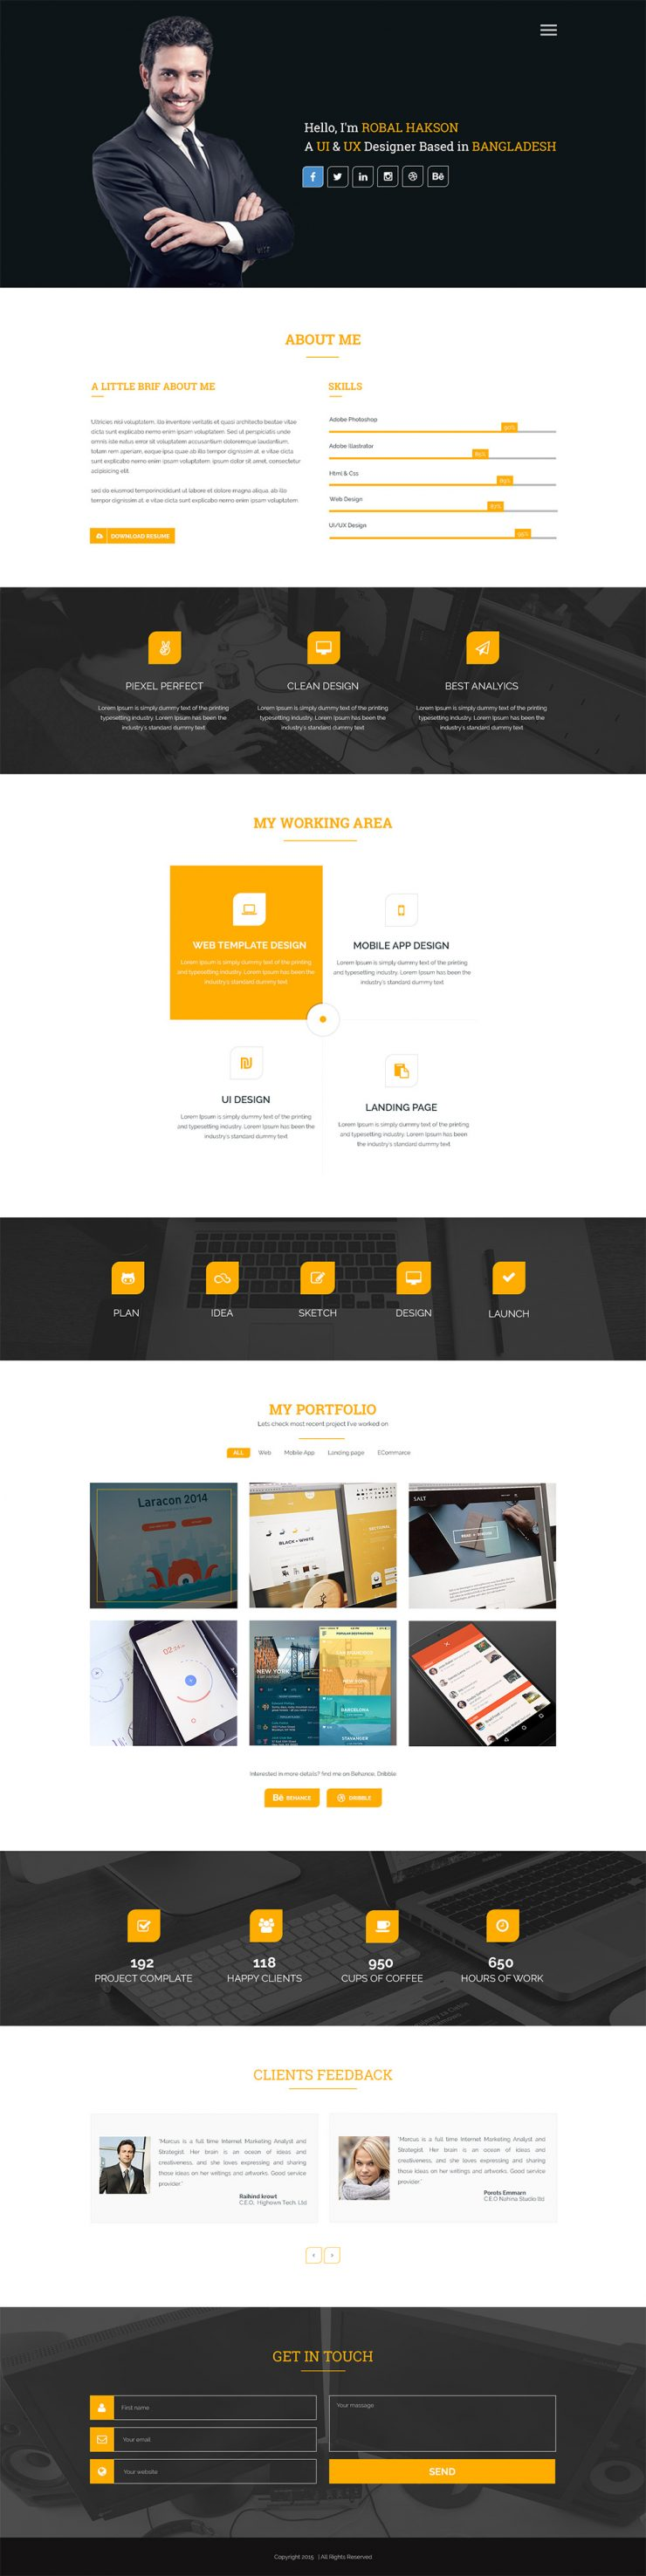 Clean One Page Corporate Portfolio Website Template Free PSD www, Work, White, Website Template, Website Layout, Website, webpage, Web Template, Web Resources, web page, Web Layout, Web Interface, Web Elements, Web Design, Web, User Interface, unique, UI, Template, Stylish, Single Page, Simple, Resources, Quality, Psd Templates, PSD Sources, psd resources, PSD images, psd free download, psd free, PSD file, psd download, PSD, Professional, Portfolio, Photoshop, pack, original, onepage, Office, new, Modern, Layered PSDs, Layered PSD, Homepage, Graphics, Gallery, Fresh, Freebies, Free Resources, Free PSD, free download, Free, Elements, download psd, download free psd, Download, detailed, Design, Creative, Corporate, company, client, Clean, Business, Black, Adobe Photoshop,